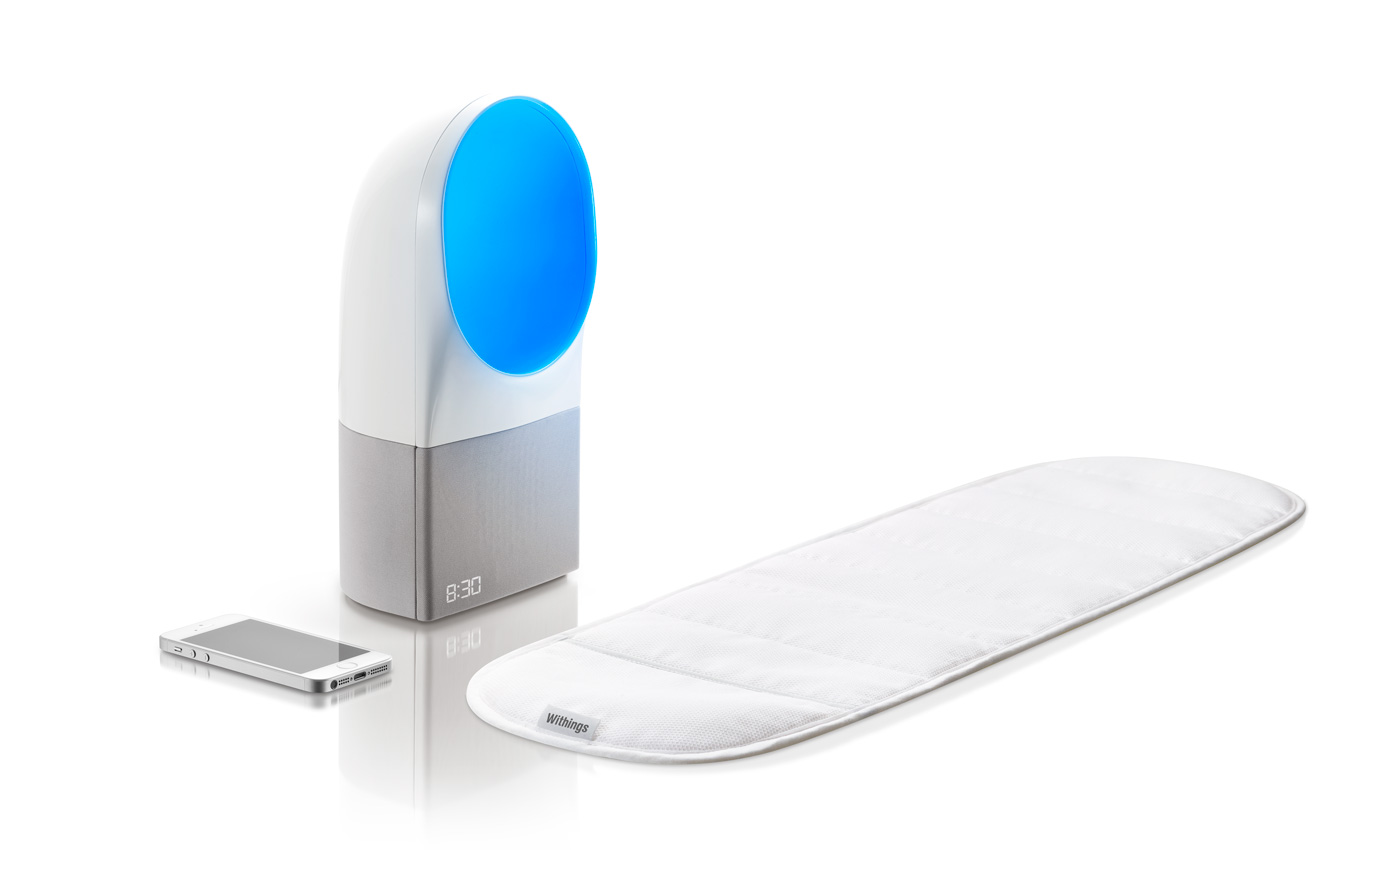 Withings Aura: The First Active Smart Sleep System Announced at CES 2014